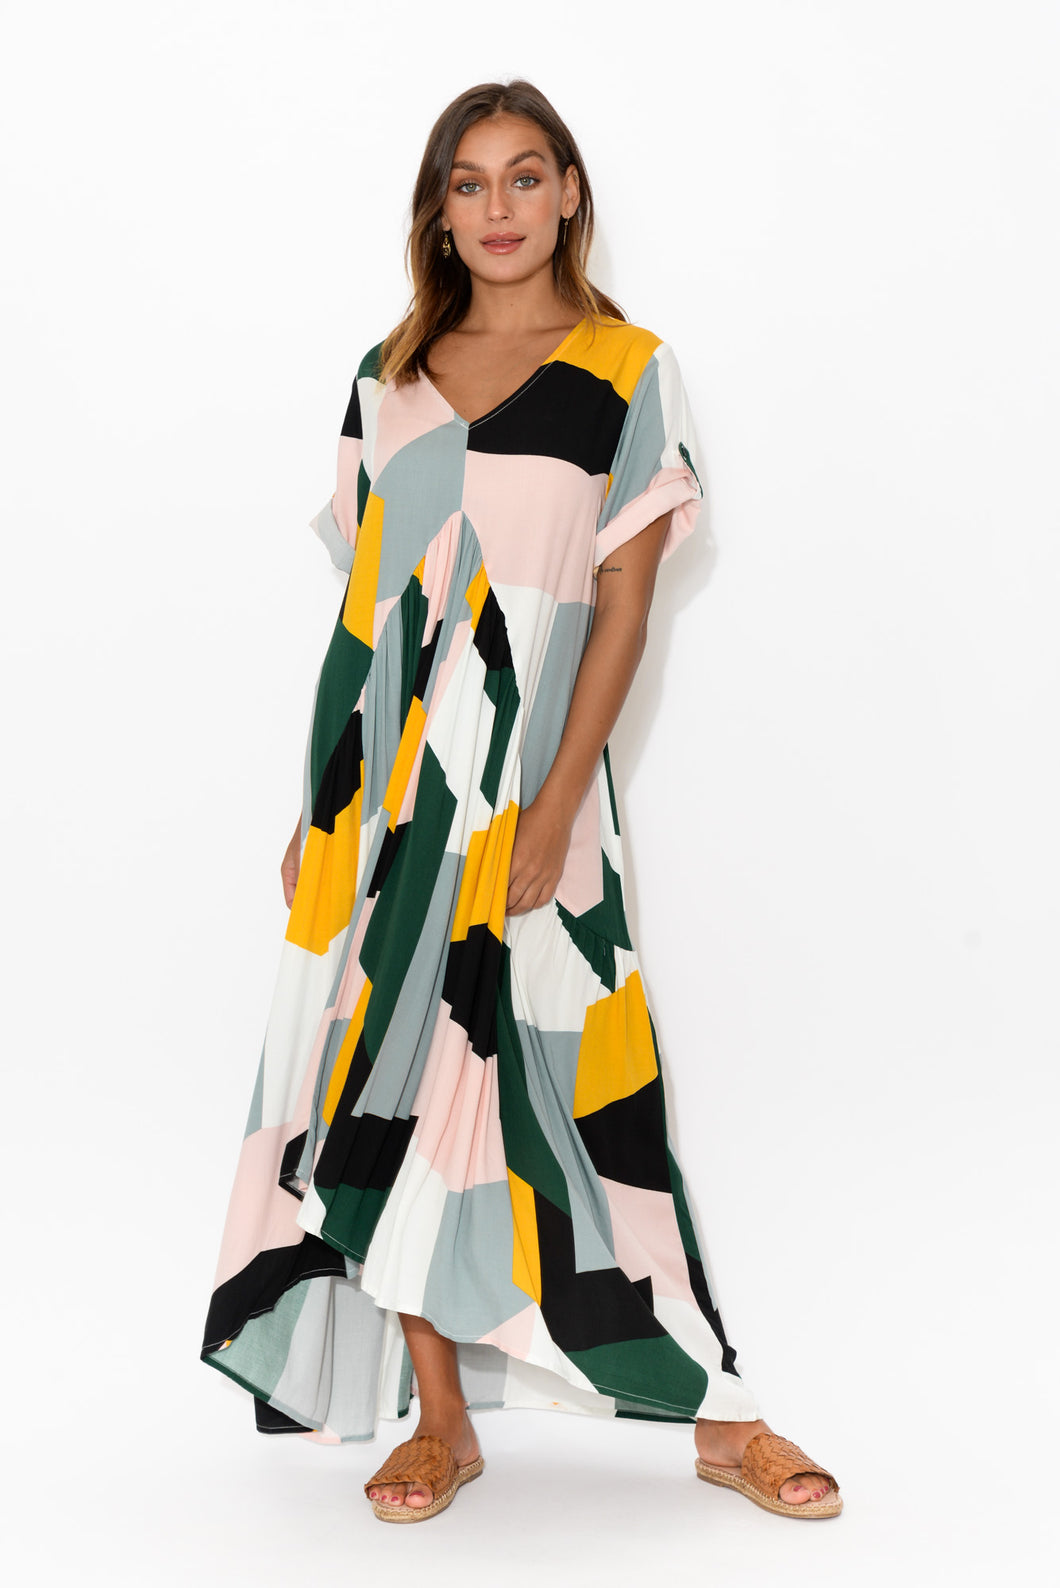 abstract  geometrical  Print_abstract Event  occasion  wedding  Occasion_event dress